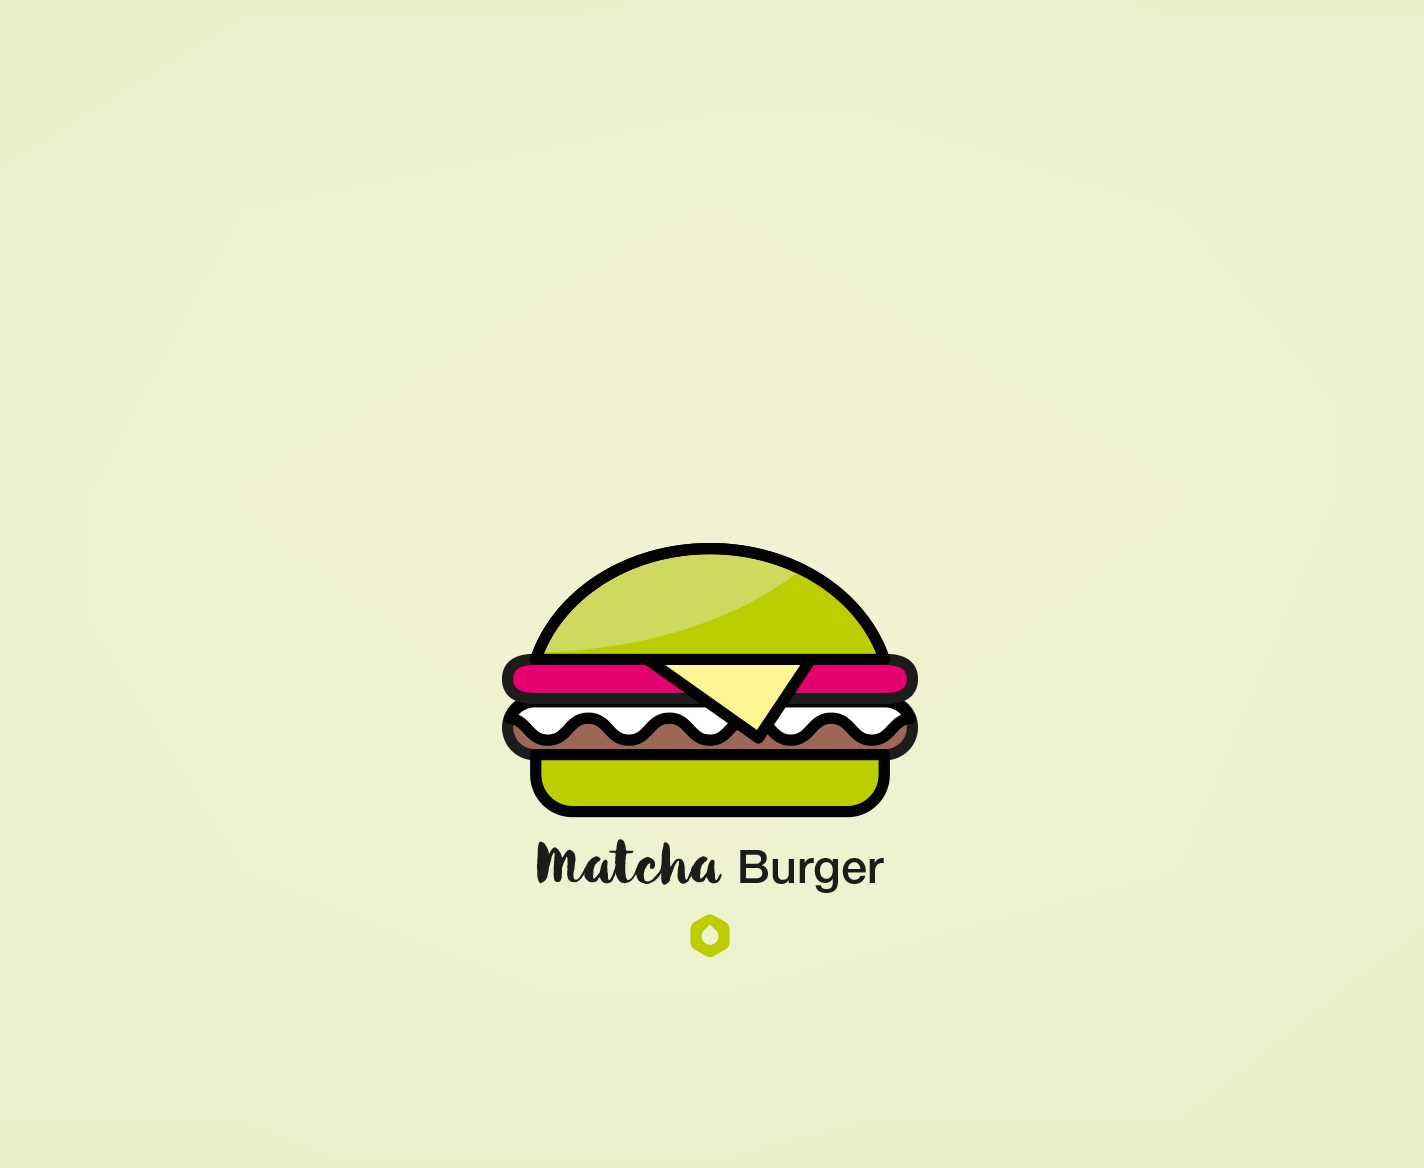 Wallpaper Pick Your Burger - iPad - Matcha